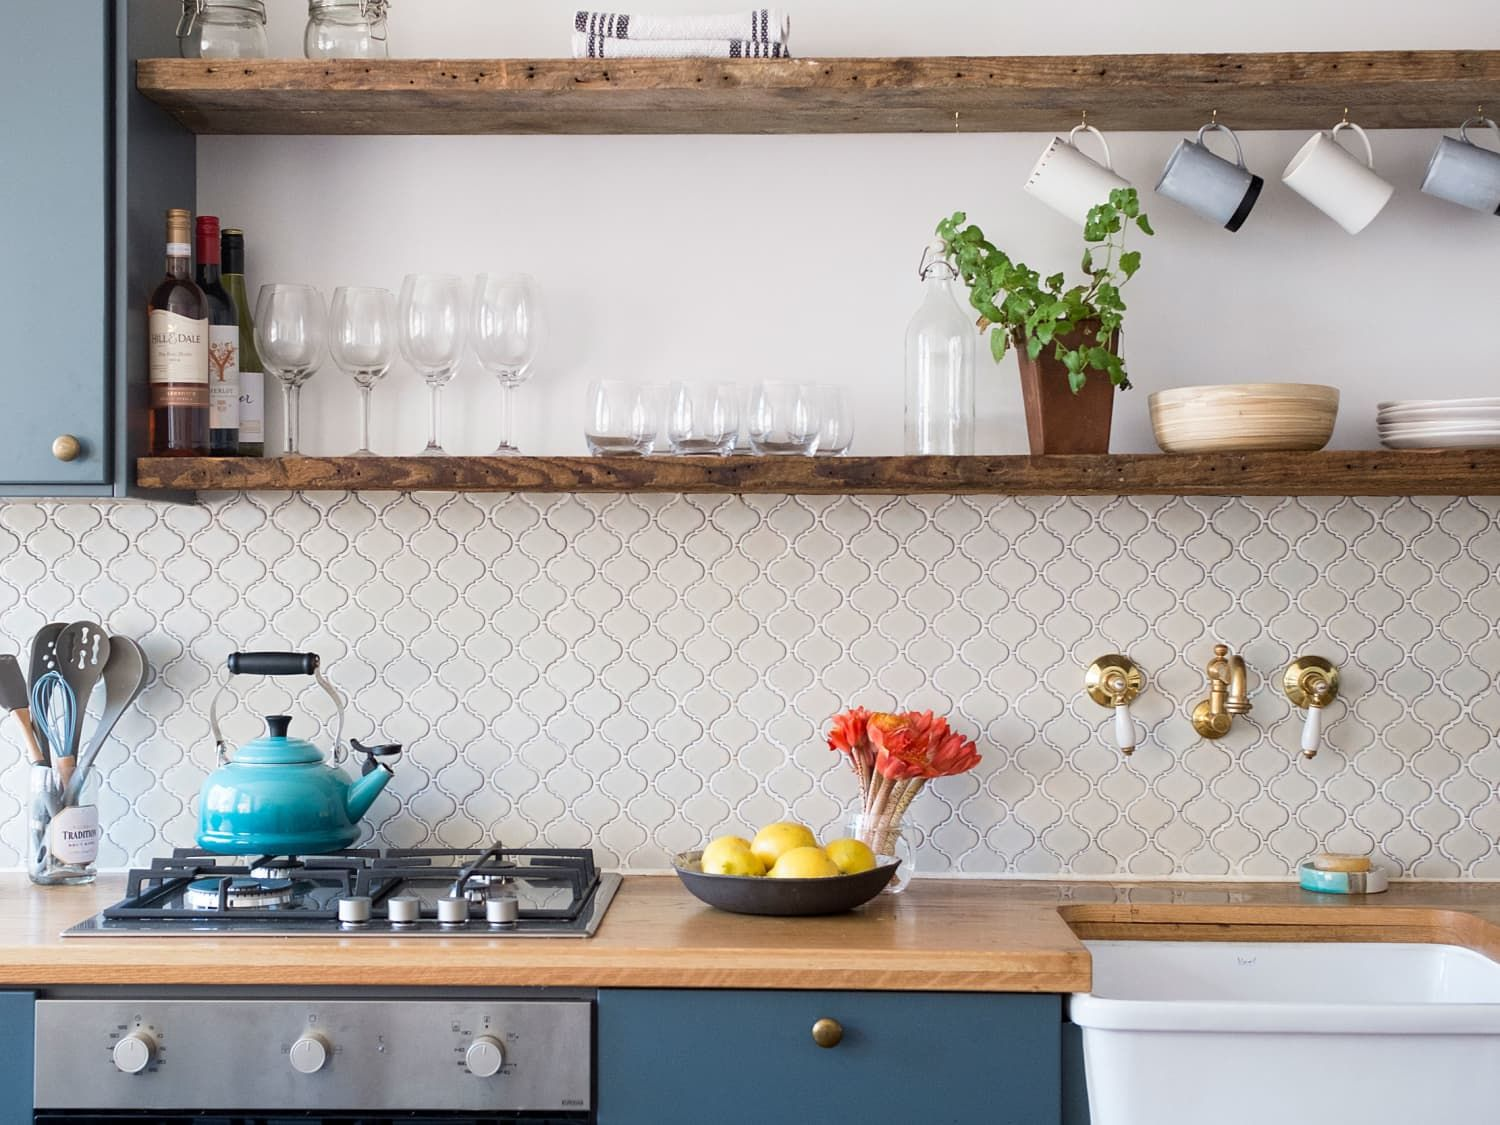 8 Kitchen Cabinet Paint Jobs We Just Can T Quit Painted Kitchen Cabinets Colors White Tile Kitchen Backsplash Painting Kitchen Cabinets